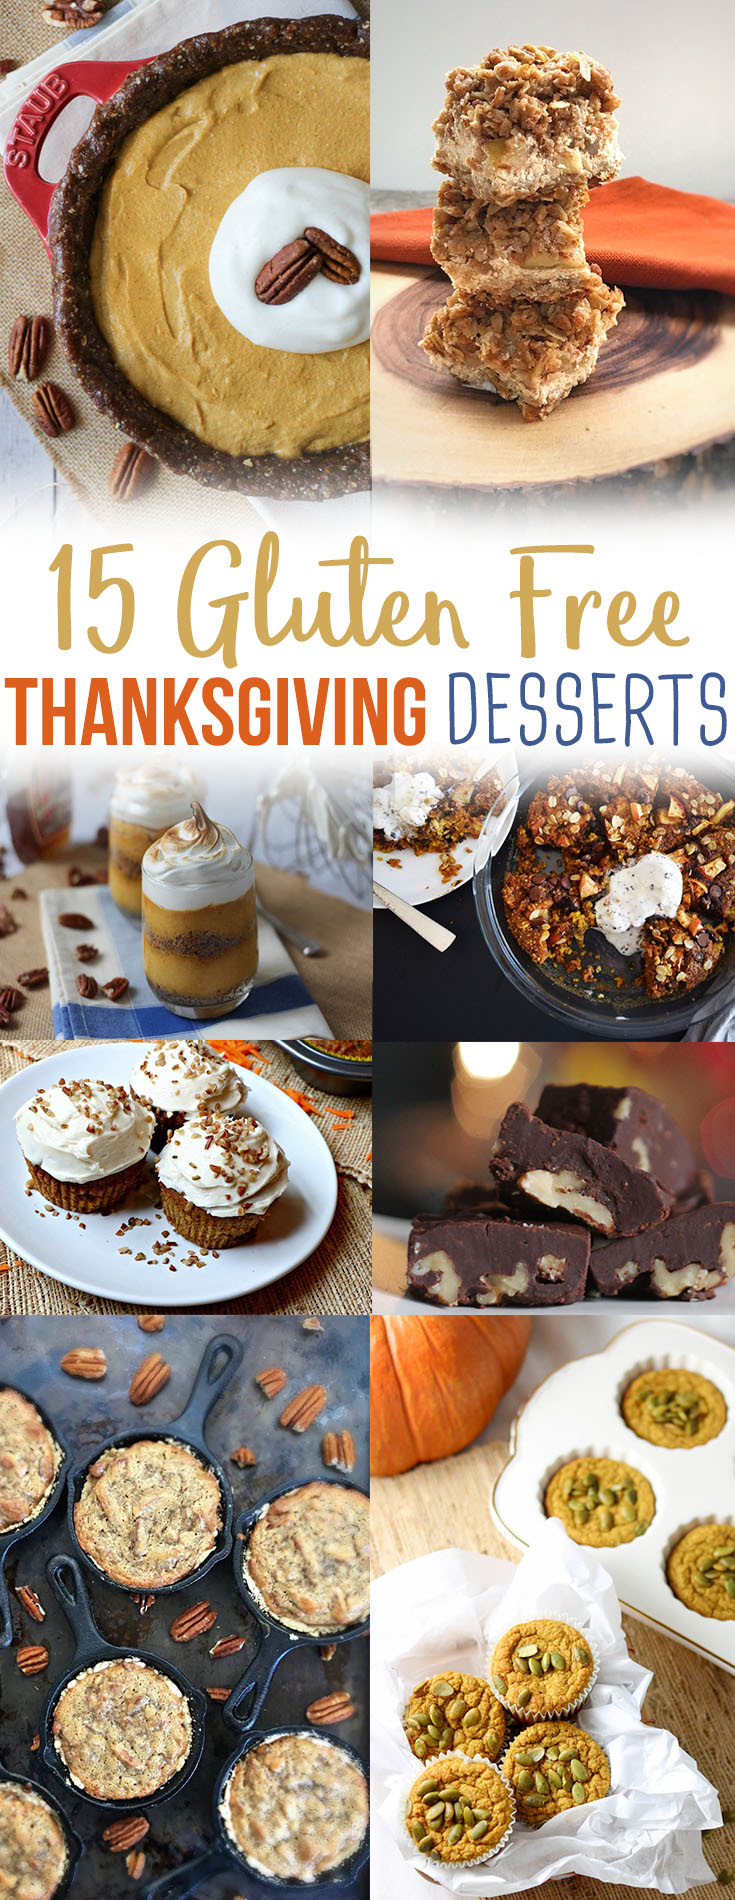 Thanksgiving Gluten Free Desserts  15 Healthy Gluten Free Thanksgiving Dessert Recipes